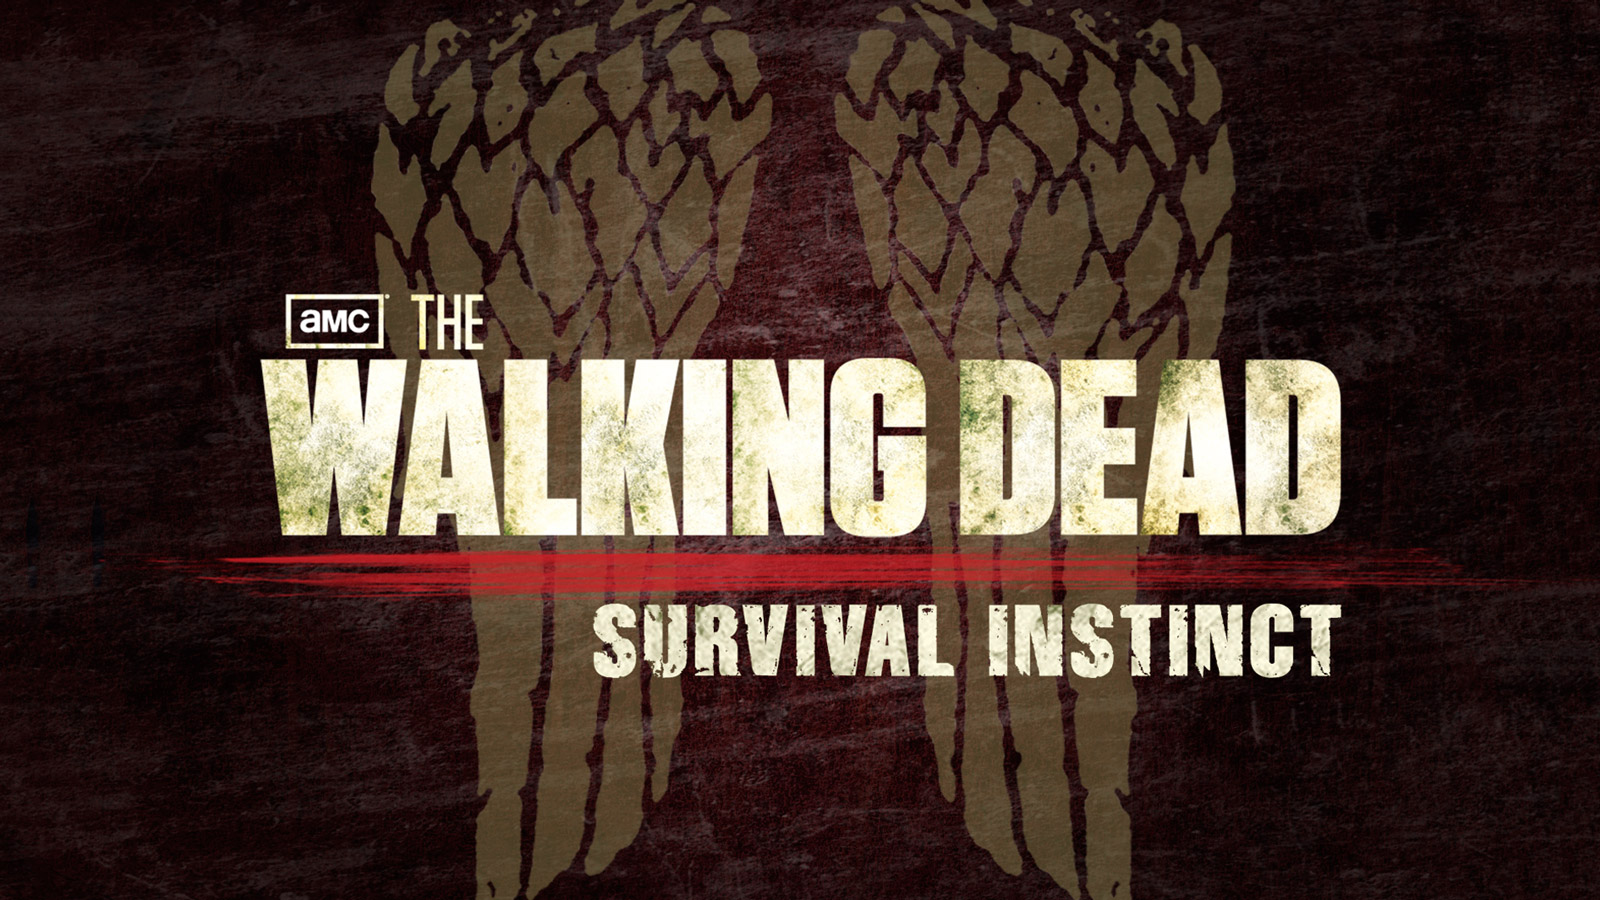 The Walking Dead: Survival Instinct Wallpaper in 1600x900